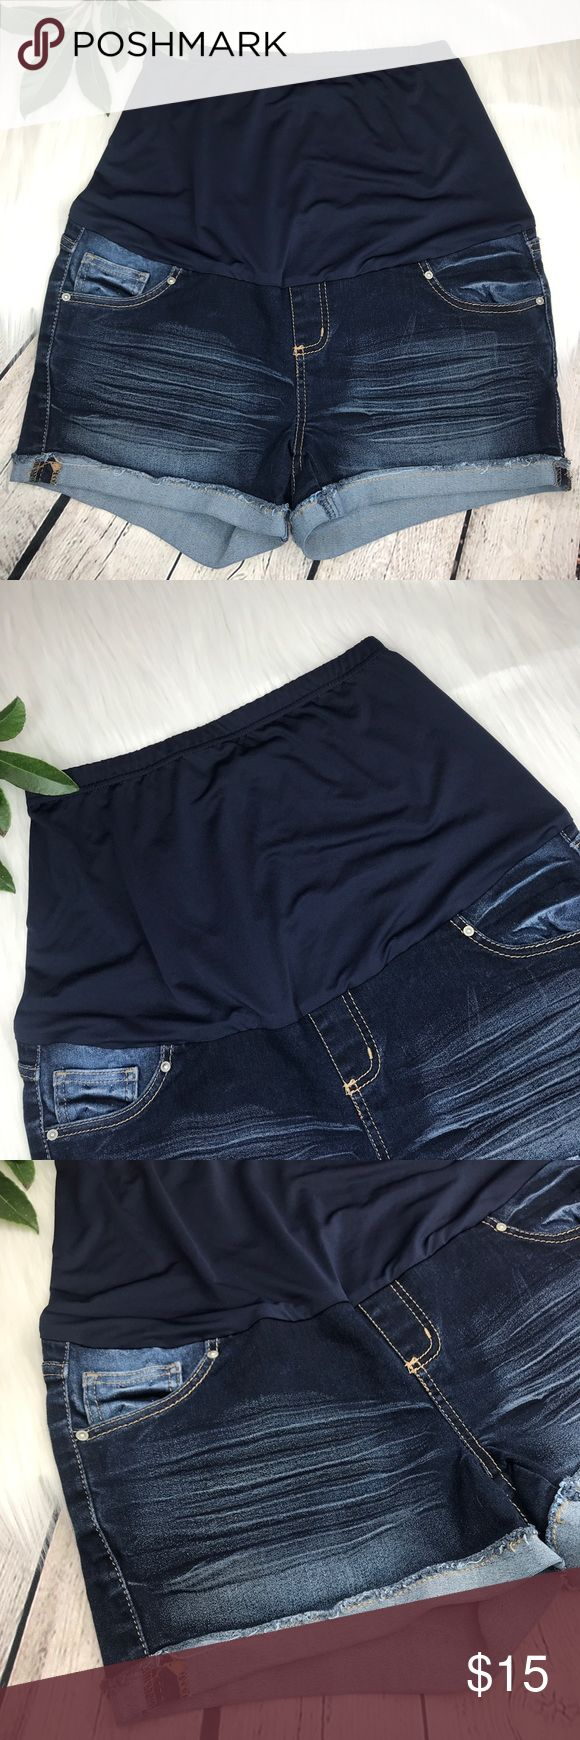 "Paris Blues Maternity Shorts Sz M Dark Distressed Paris Blues Womens Maternity Shorts Sz M Distressed Cuffed Hems  Wash: Dark Materials: 71% Cotton 28% Polyester 1% Spandex  Approx Measurements: Hips- 38"" Inseam- 3"" Paris Blues Shorts Jean Shorts"